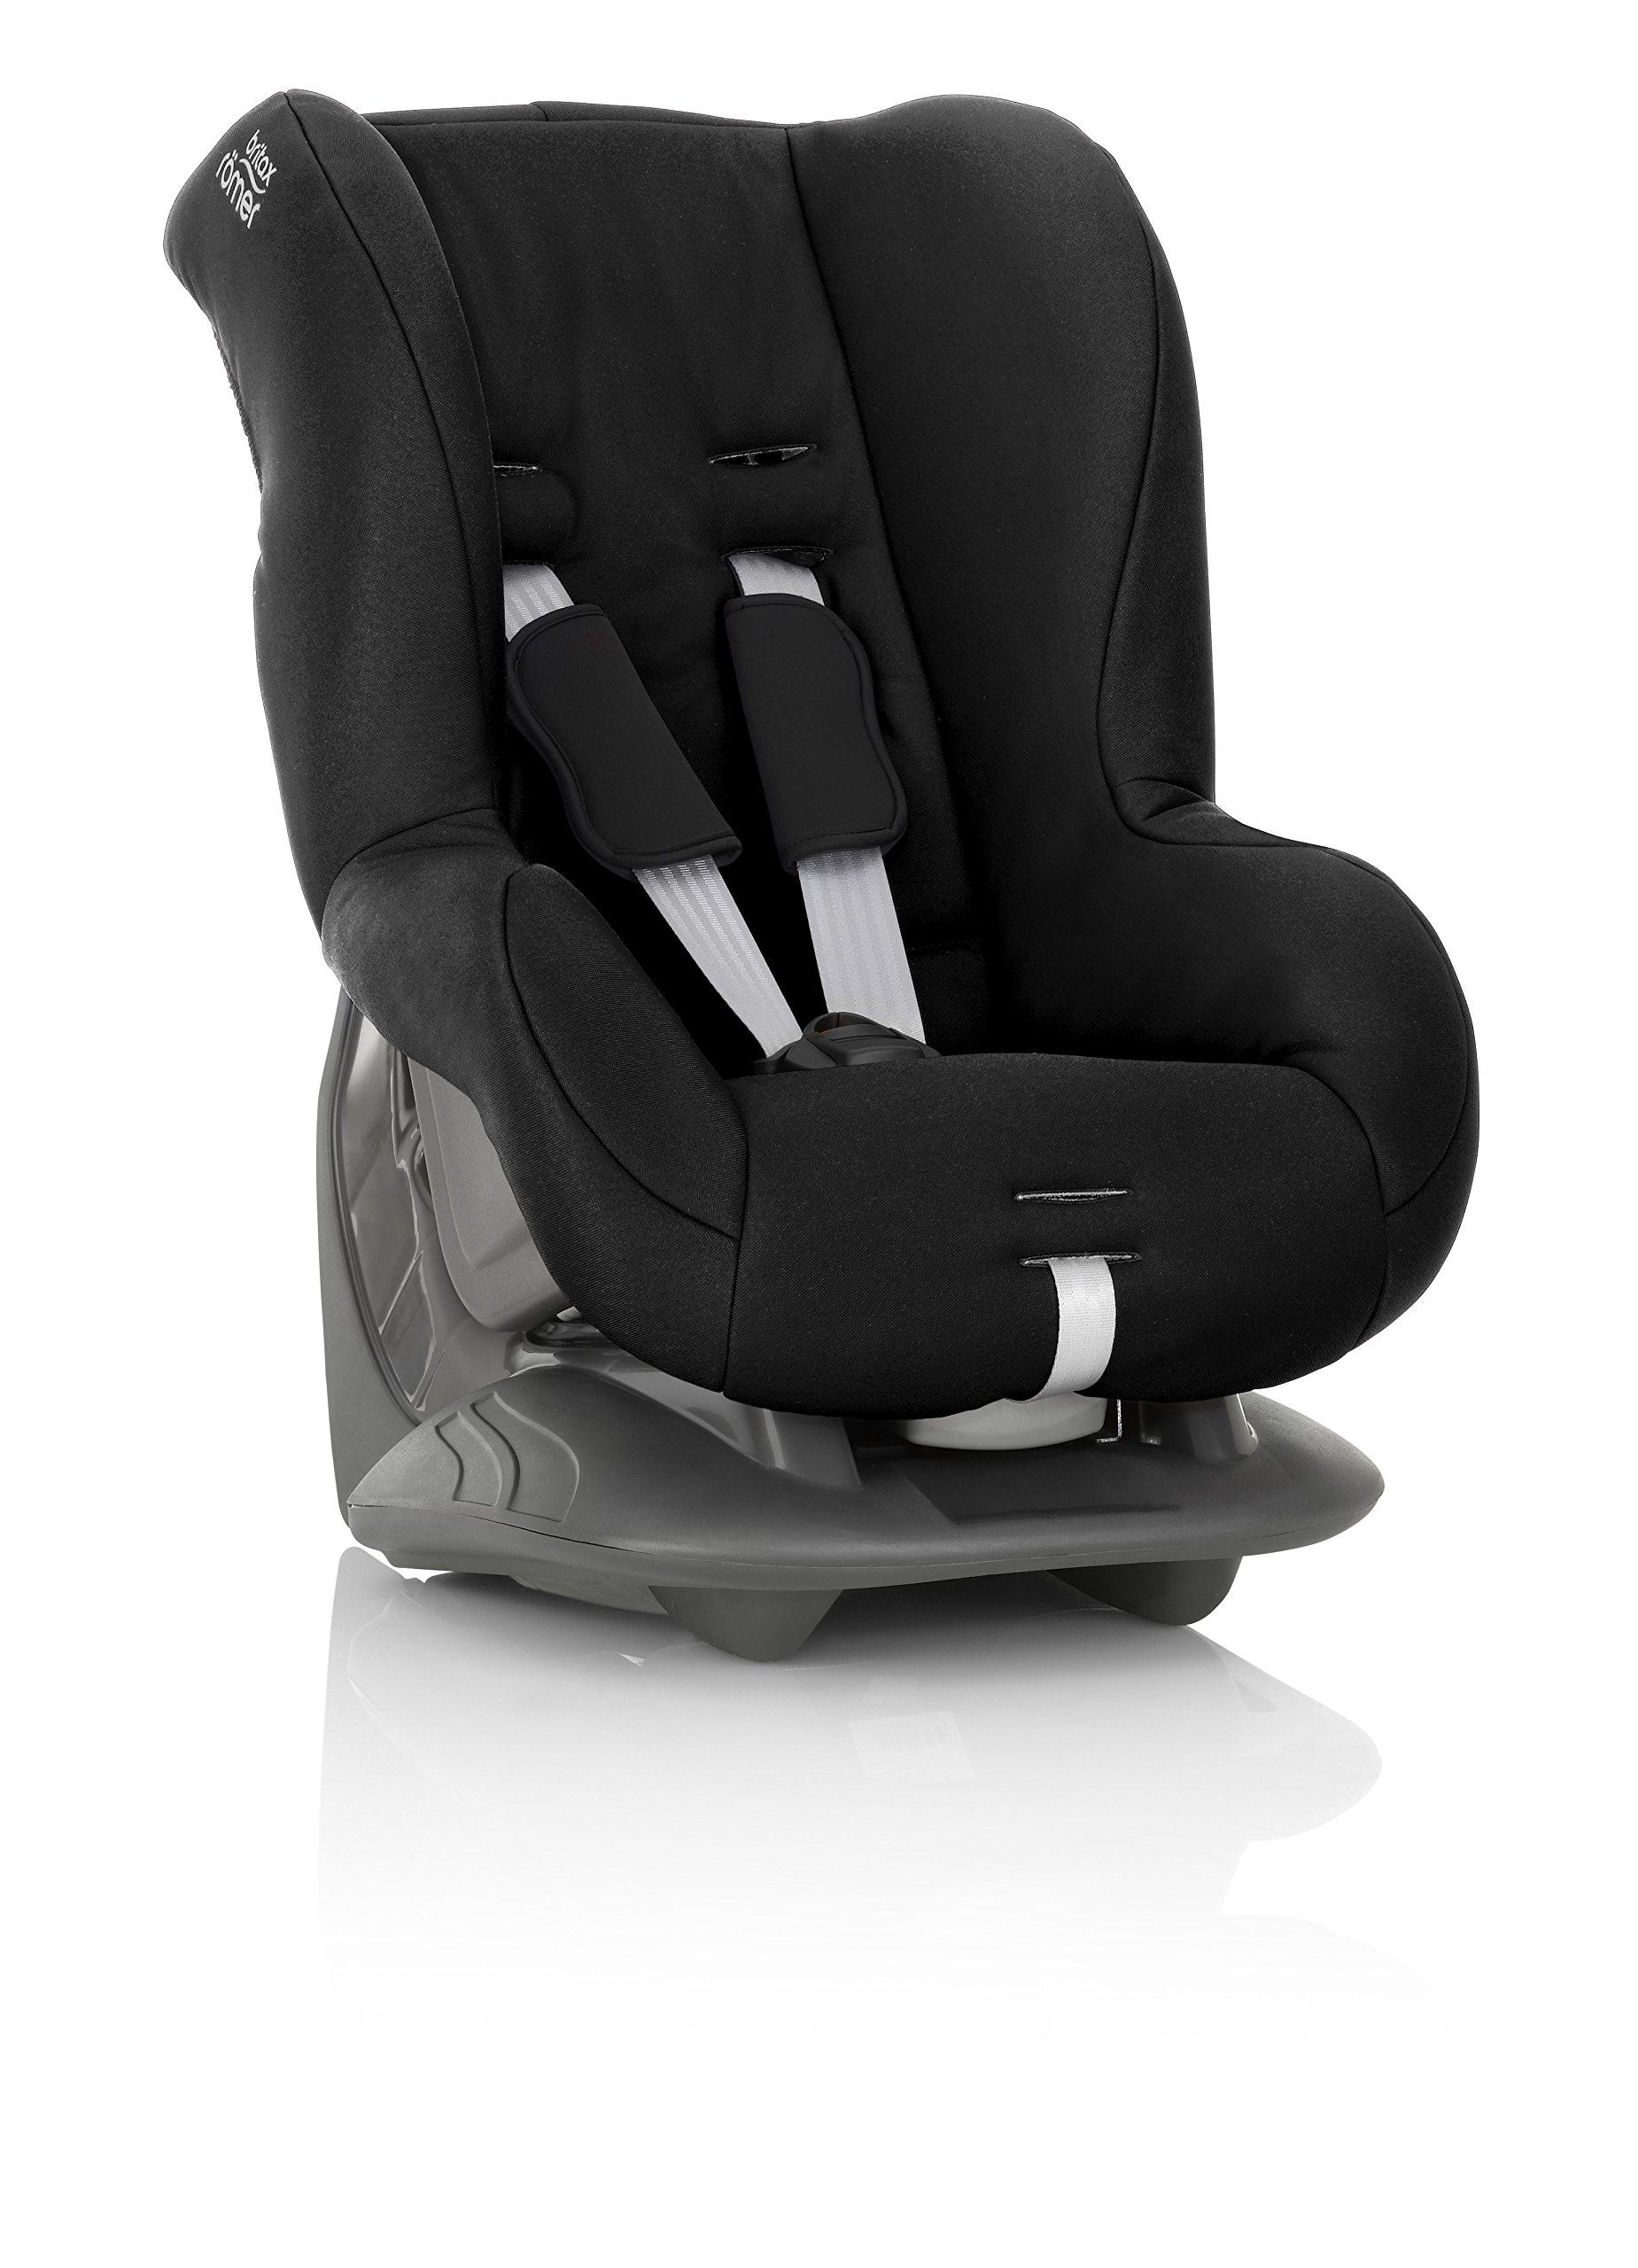 Britax Römer ECLIPSE Group 1 (9-18kg) Car Seat - Cosmos Black Britax Simple installation with a 3-point or 2-point seat belt Superior protection - side impact protection, performance chest pads and pitch control system TUV certified for aircraft travel 4